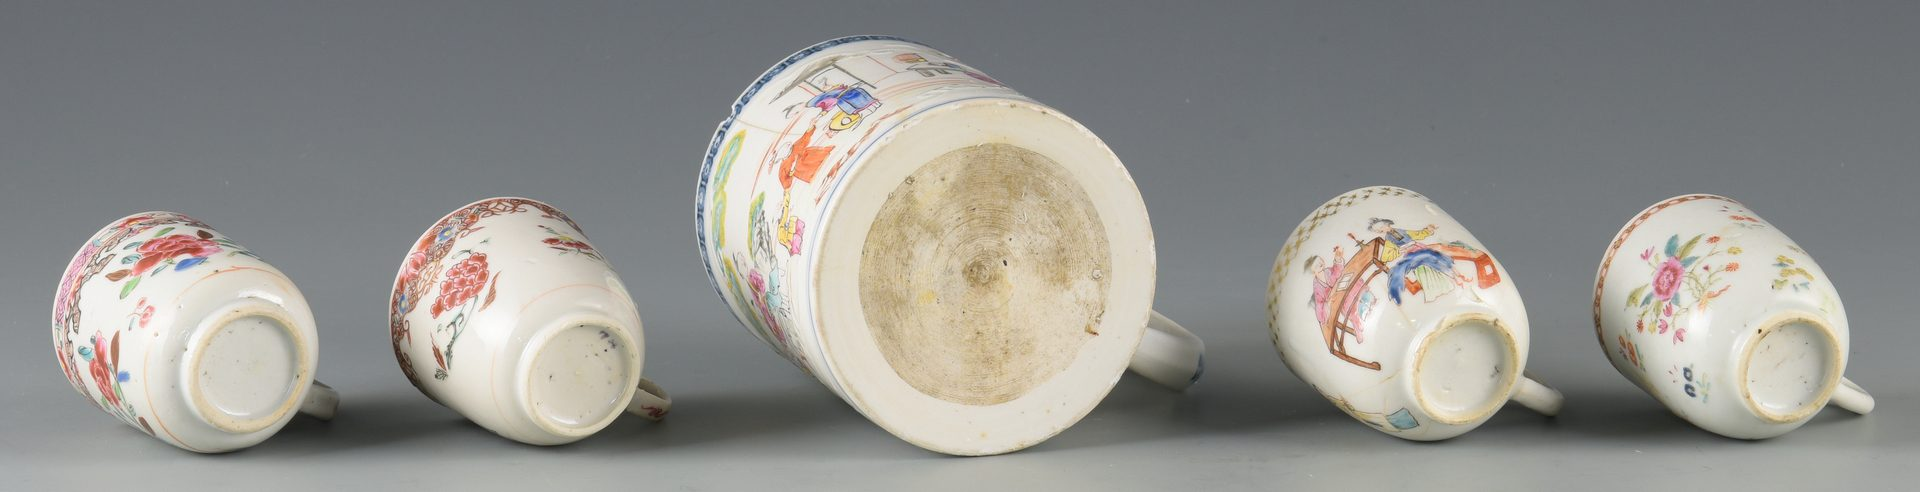 Lot 263: 8 Chinese Export Porcelain Items inc. cups, plates